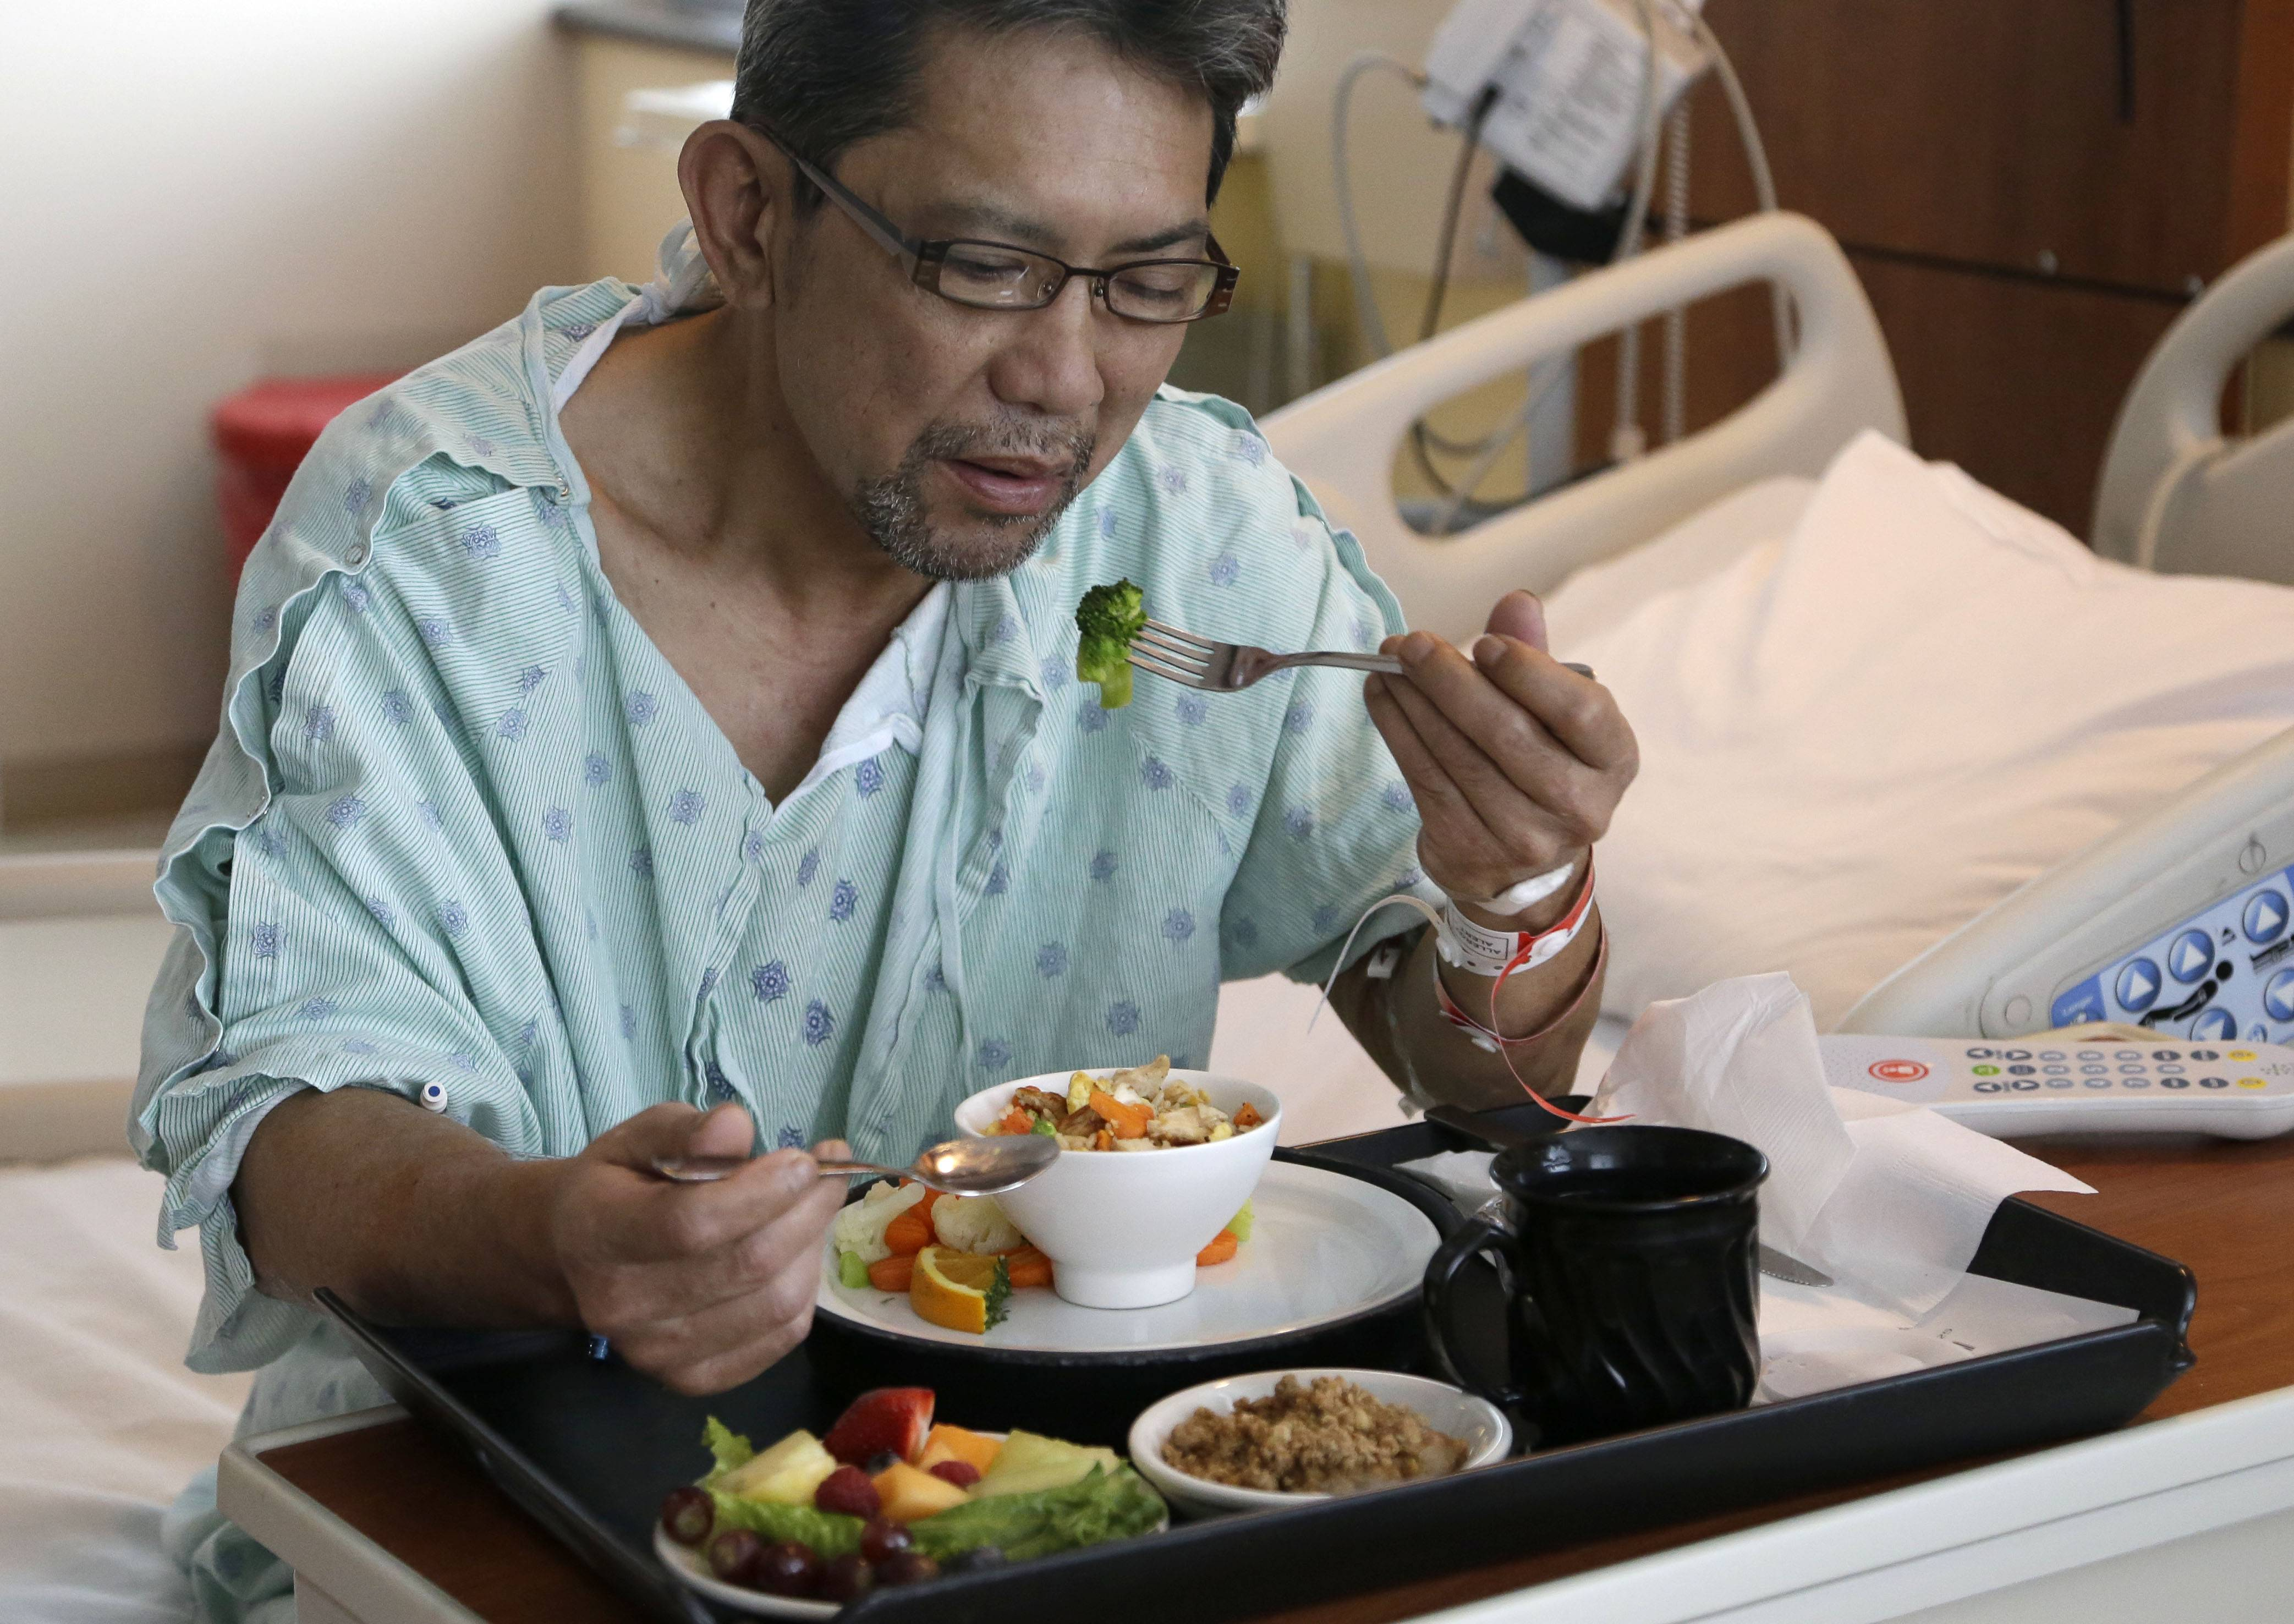 Heart patient Nhan Luong eats a heart healthy lunch of chicken fried rice, vegetables, fruit and dessert Thursday, May 1, 2014, at Houston's Memorial Hermann Southwest Hospital. Menu changes are one way to care for an increasingly diverse population that hails from regions once not typical to the Houston area.